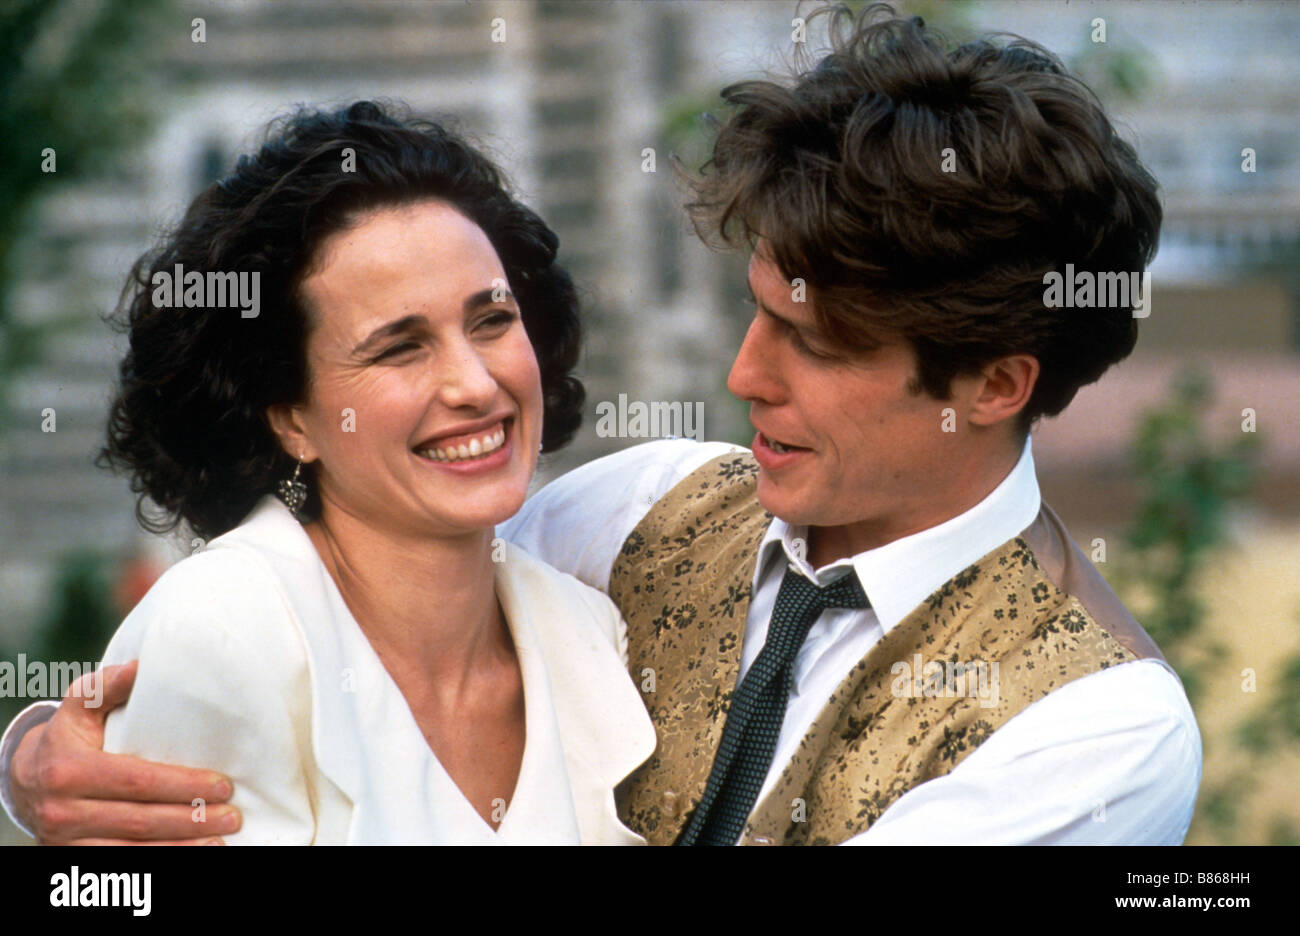 Four Weddings And A Funeral Year 1994 Uk Director Mike Newell Hugh